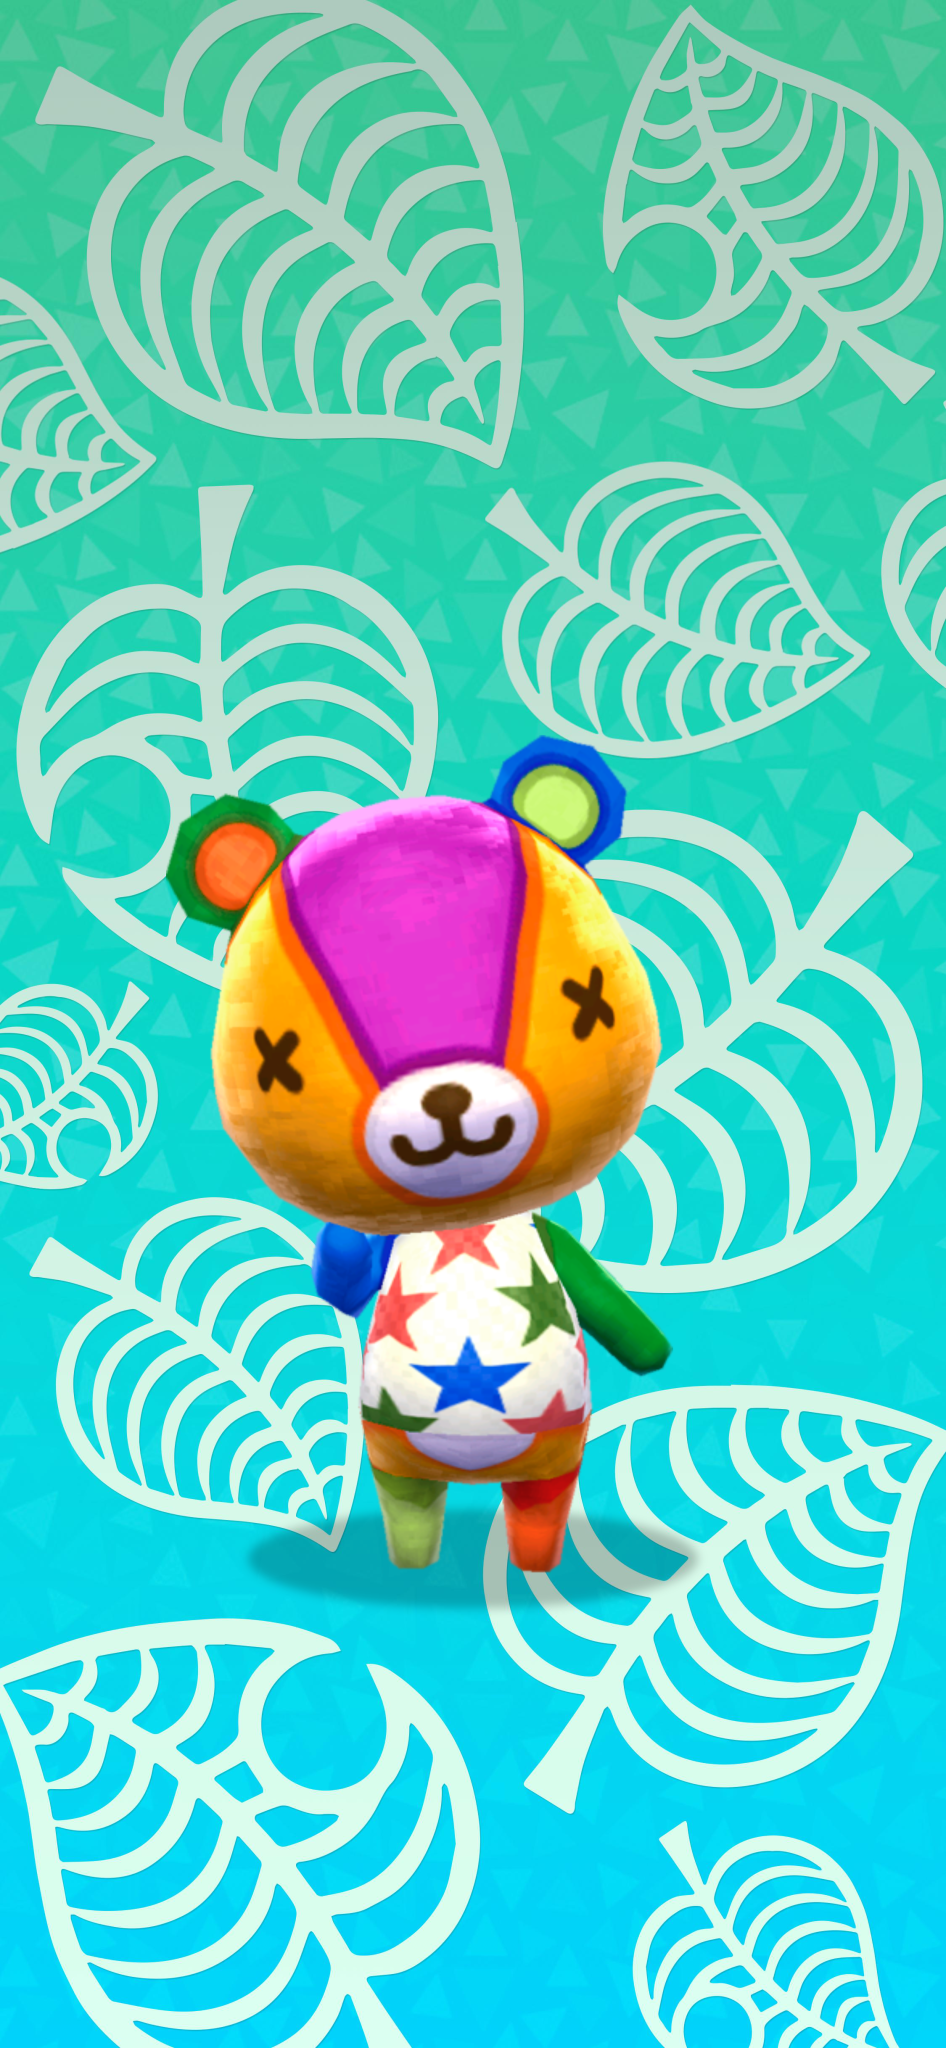 Animal Crossing New Horizons Phone Wallpapers Free For